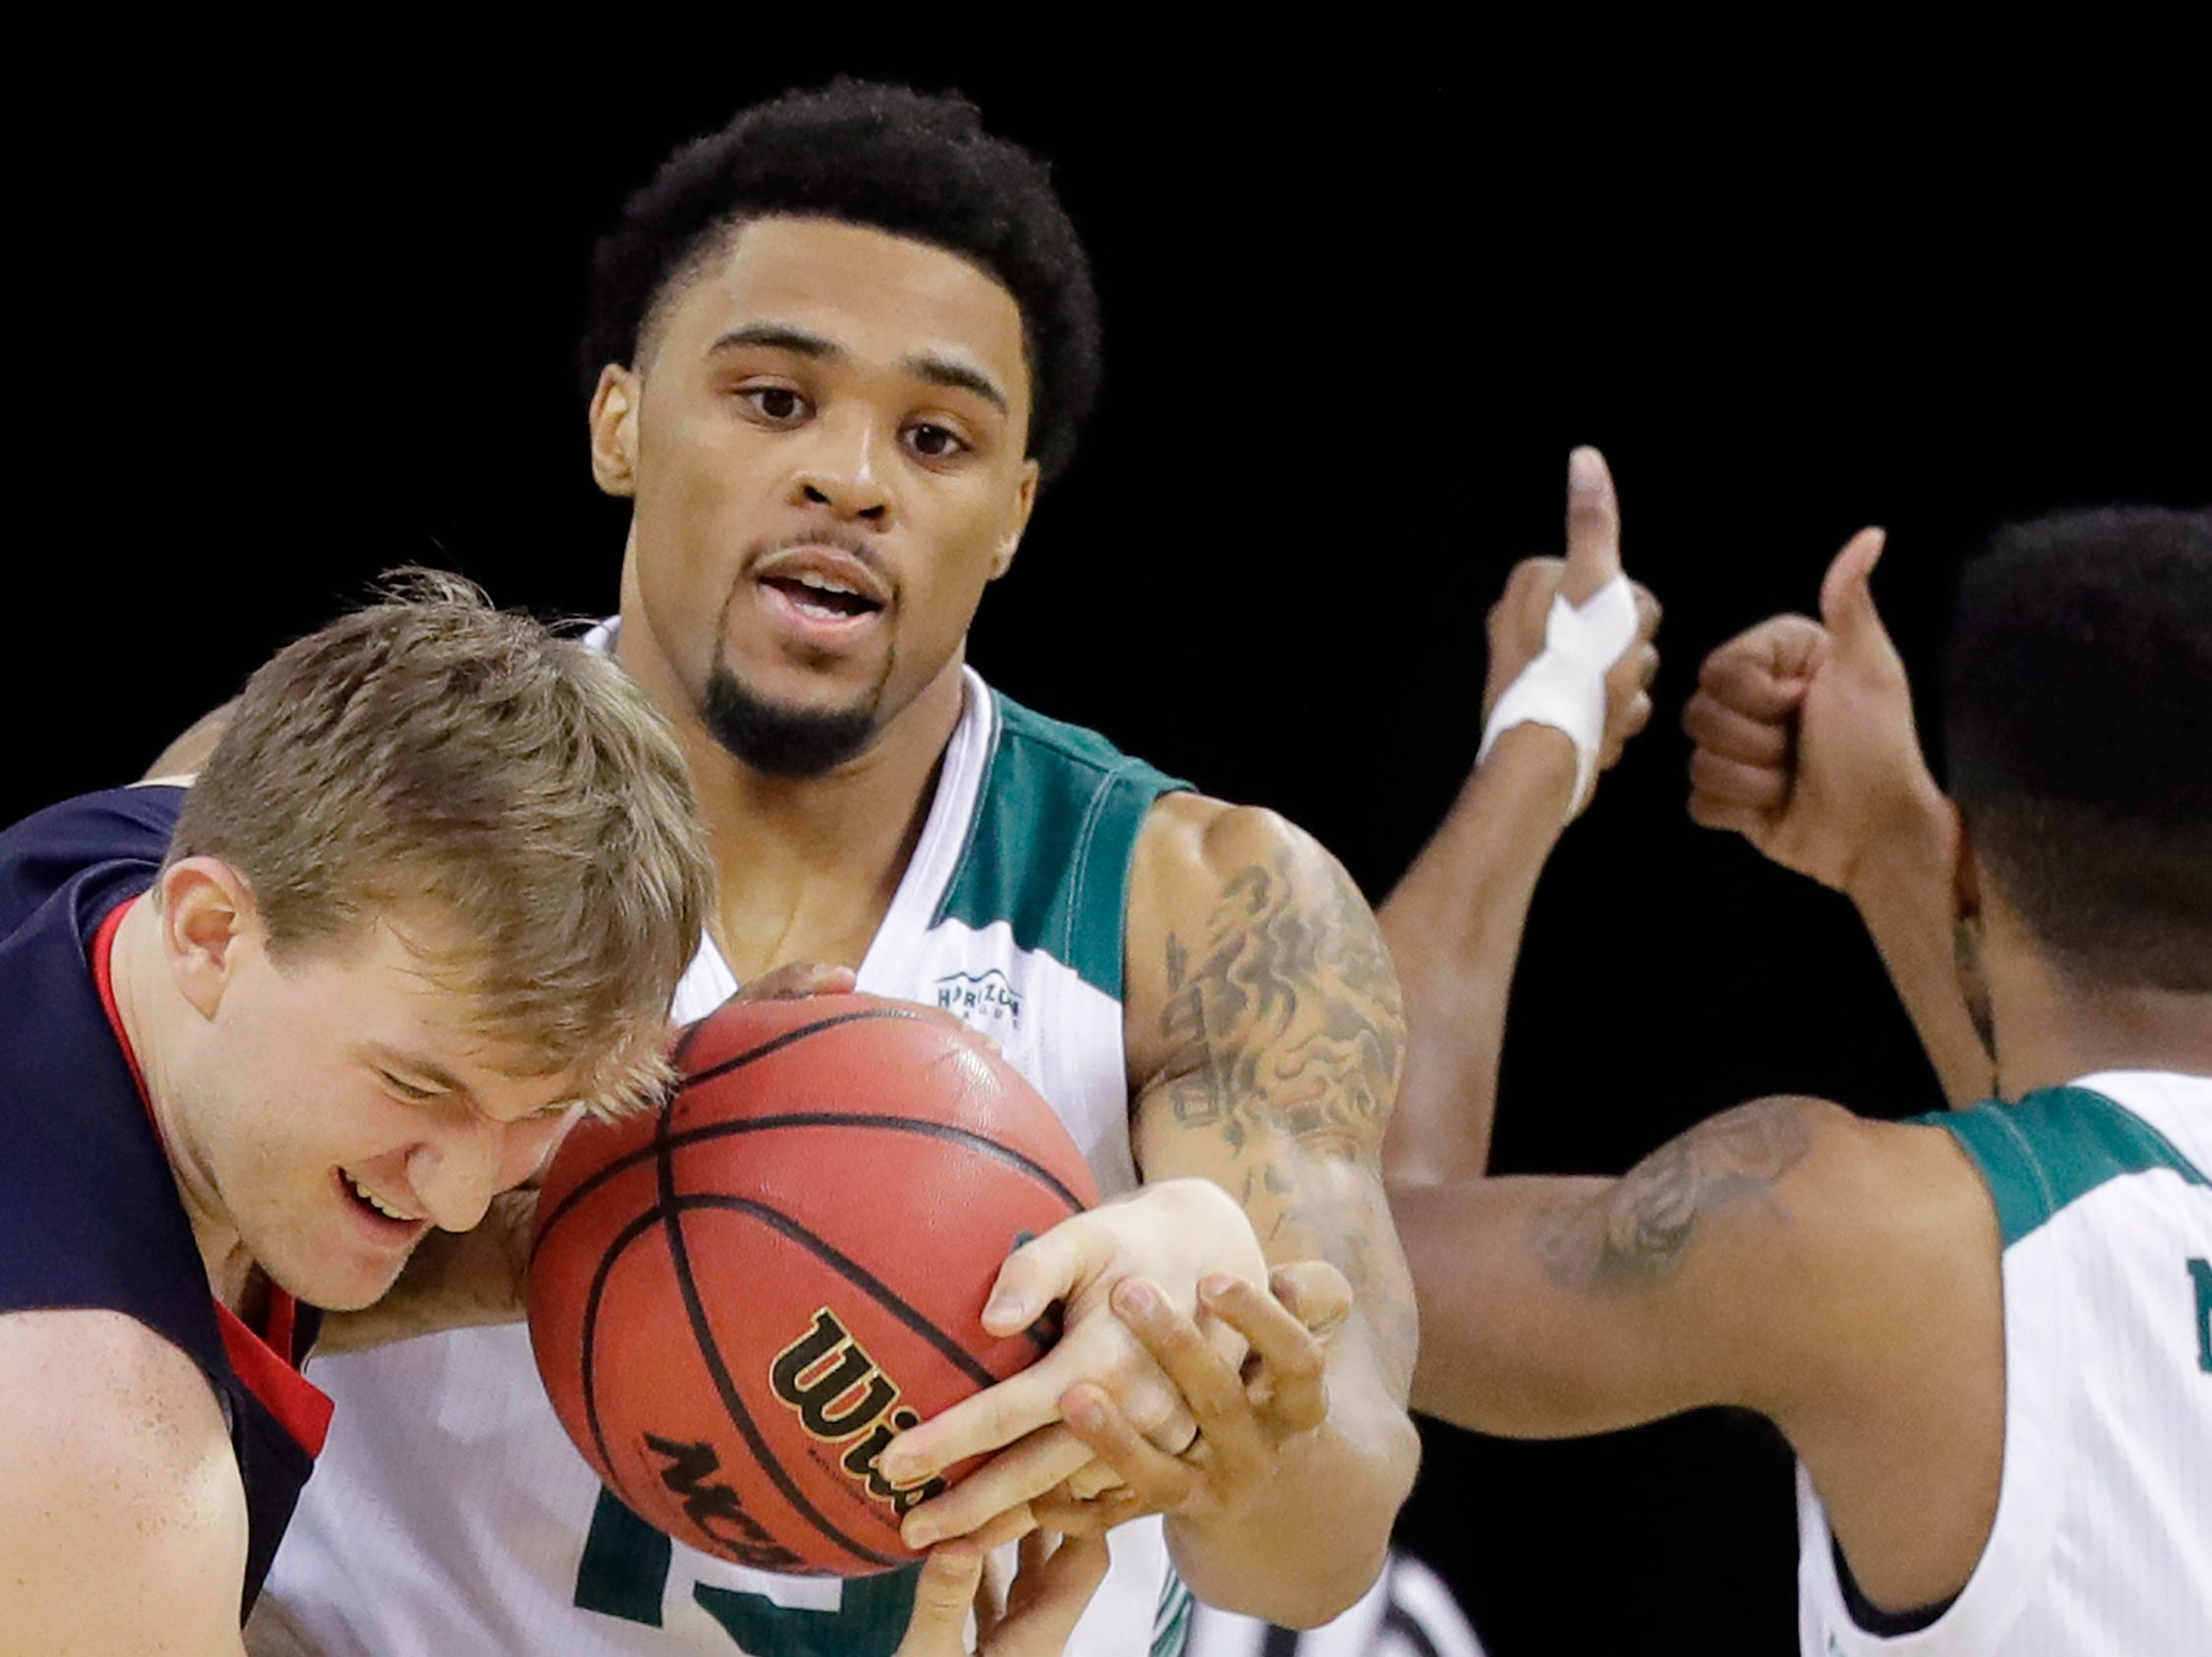 Green Bay Phoenix forward Manny Patterson (15) and Belmont Bruins forward Caleb Hollander (10) get tied up in a NCAA basketball game at the Resch Center on Saturday, December 1, 2018 in Ashwaubenon, Wis.